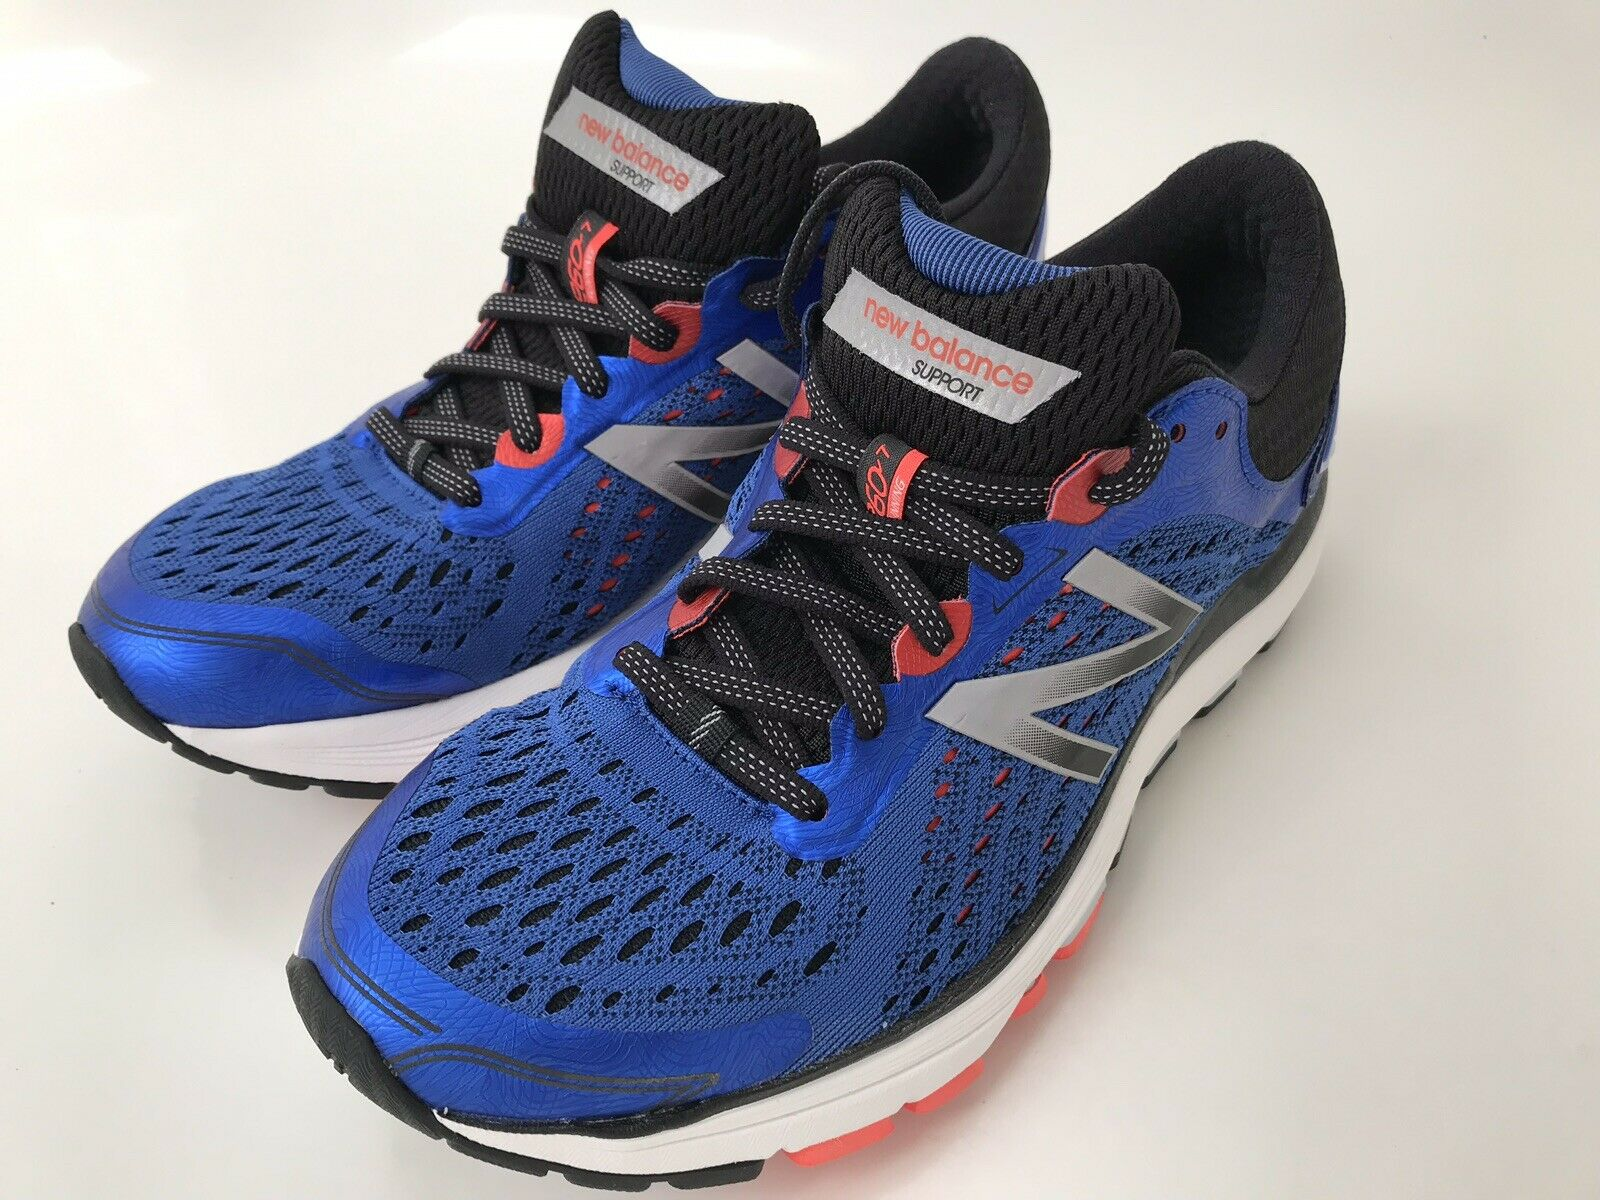 New Balance 1260v7 Support bluee Running shoes Men Size 7.5.